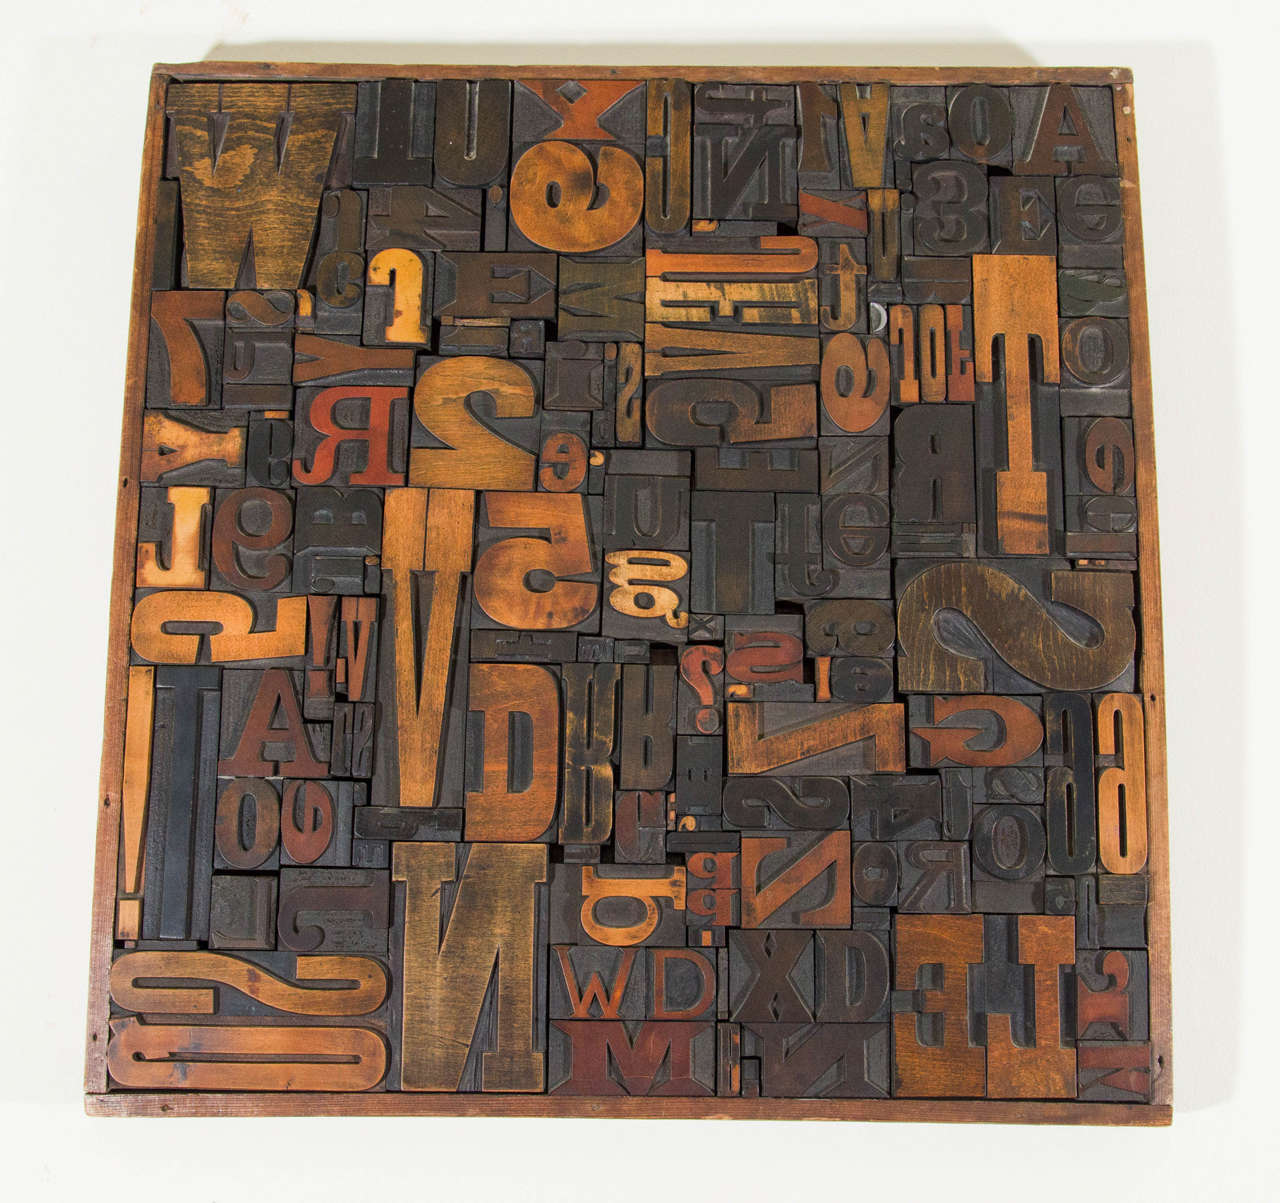 A vintage wall sculpture composed of letterpress printing blocks, produced circa 1960's - 1970's, with a variety of letters and numbers in a wooden frame. Good vintage condition with age appropriate wear.   Second letterpress printing blocks wall